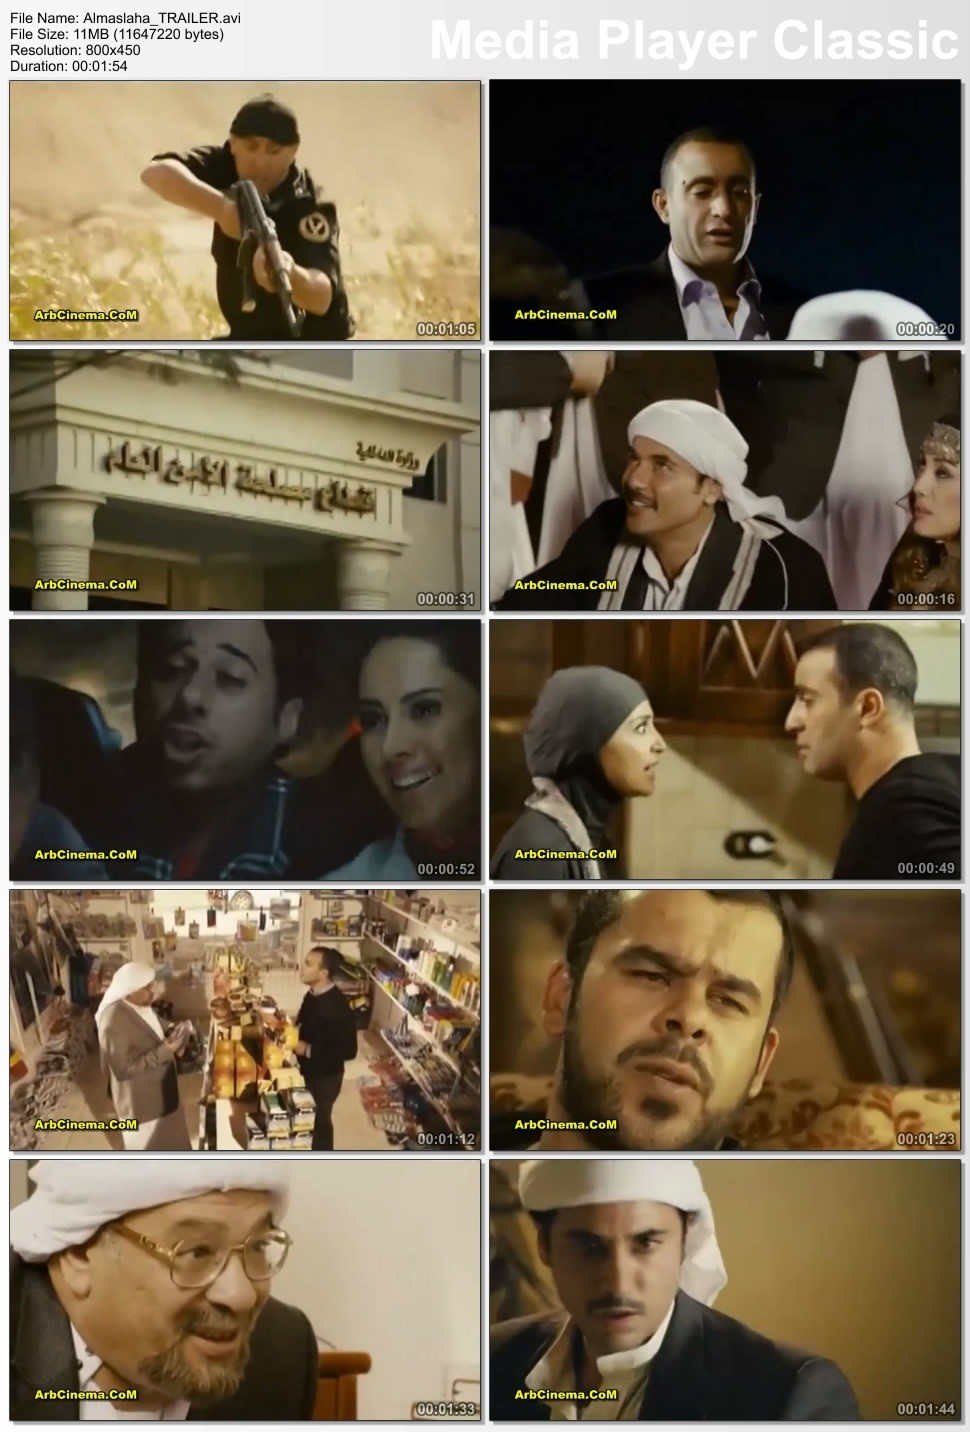 2012 DVDrip elmasla7a Official Movie thumb109.jpg